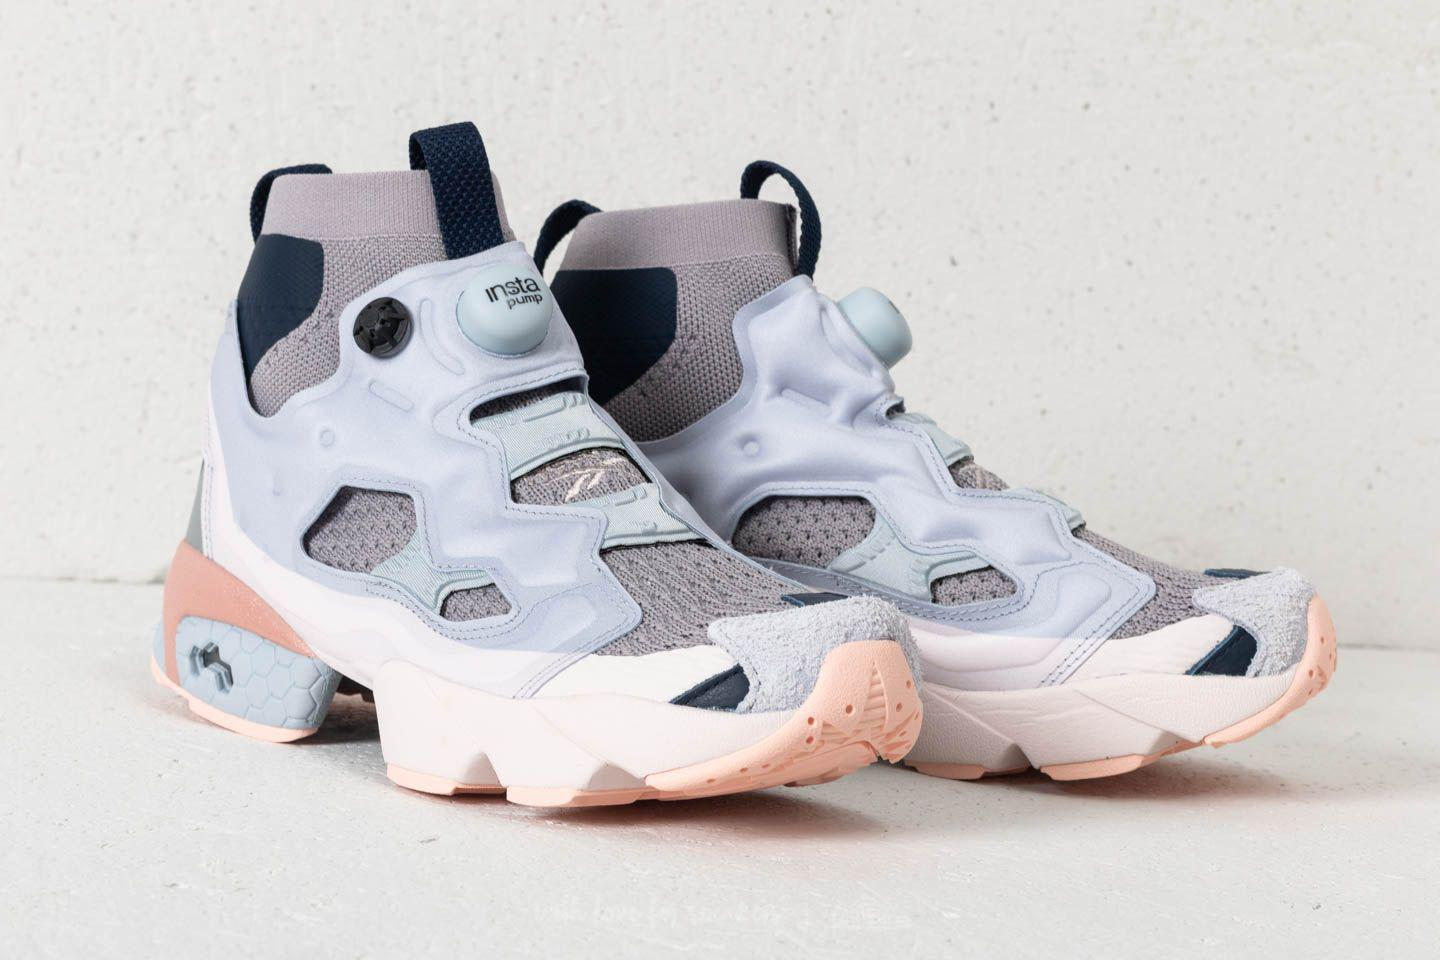 Reebok Instapump Fury OG Ultraknit DP Power Grey/ Cloud Grey/ Cloud Grey DYsmxIC